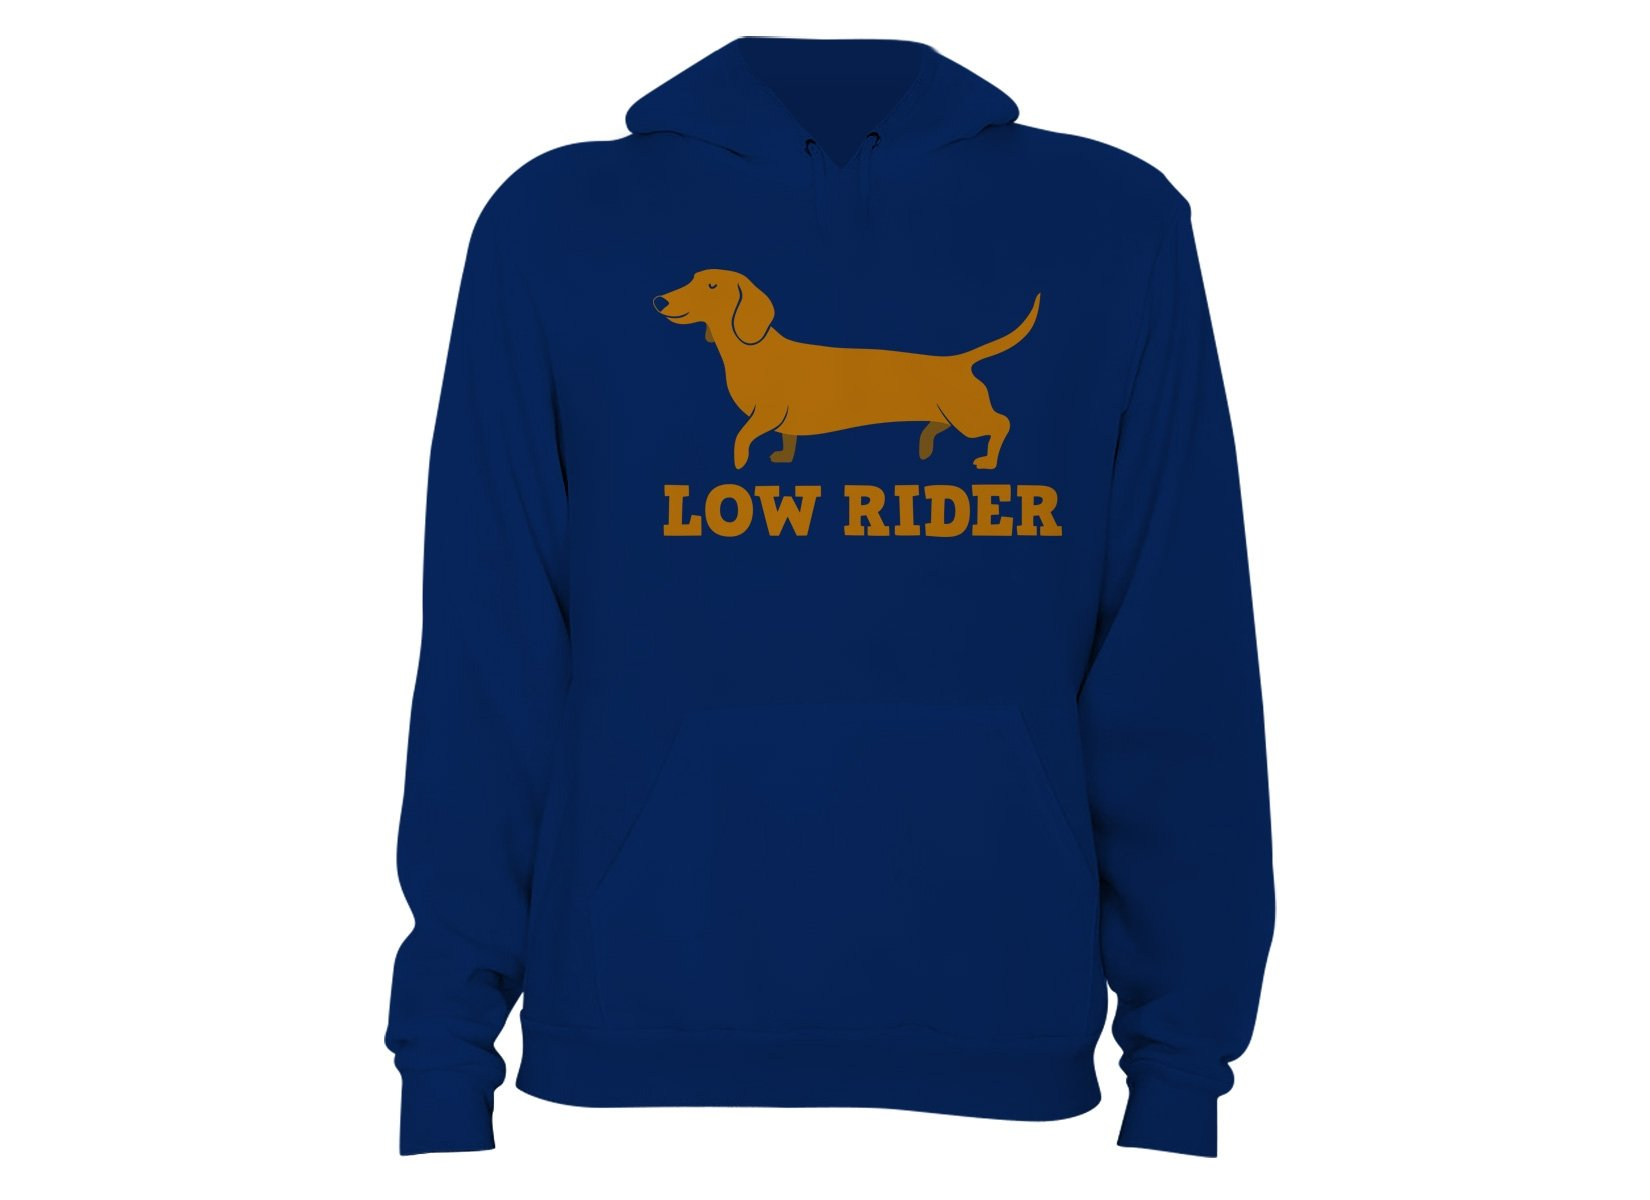 Low Rider on Hoodie